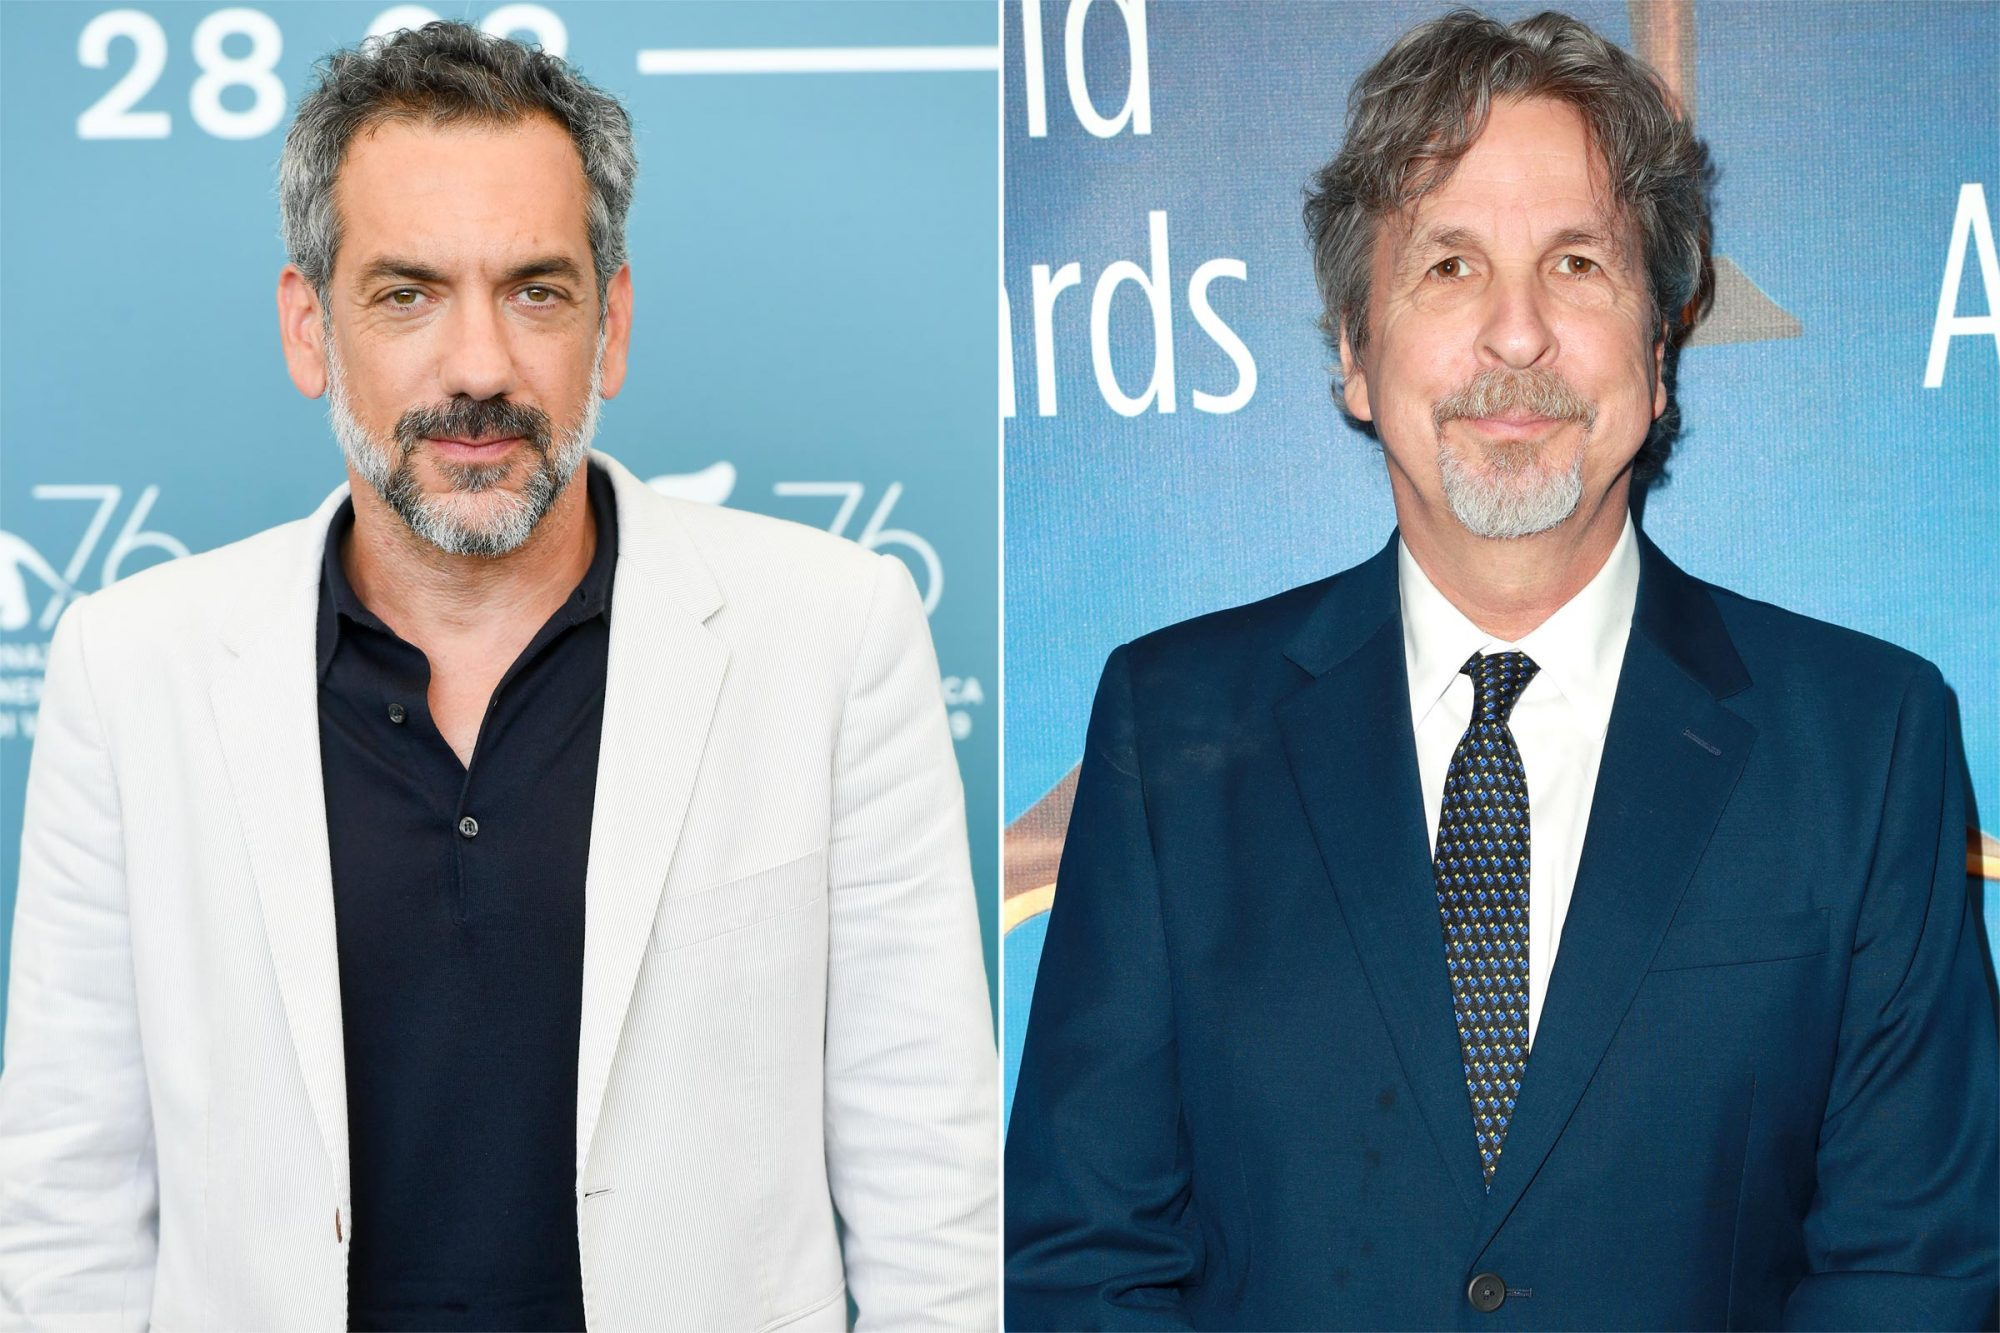 Todd Phillips / Peter Farrelly